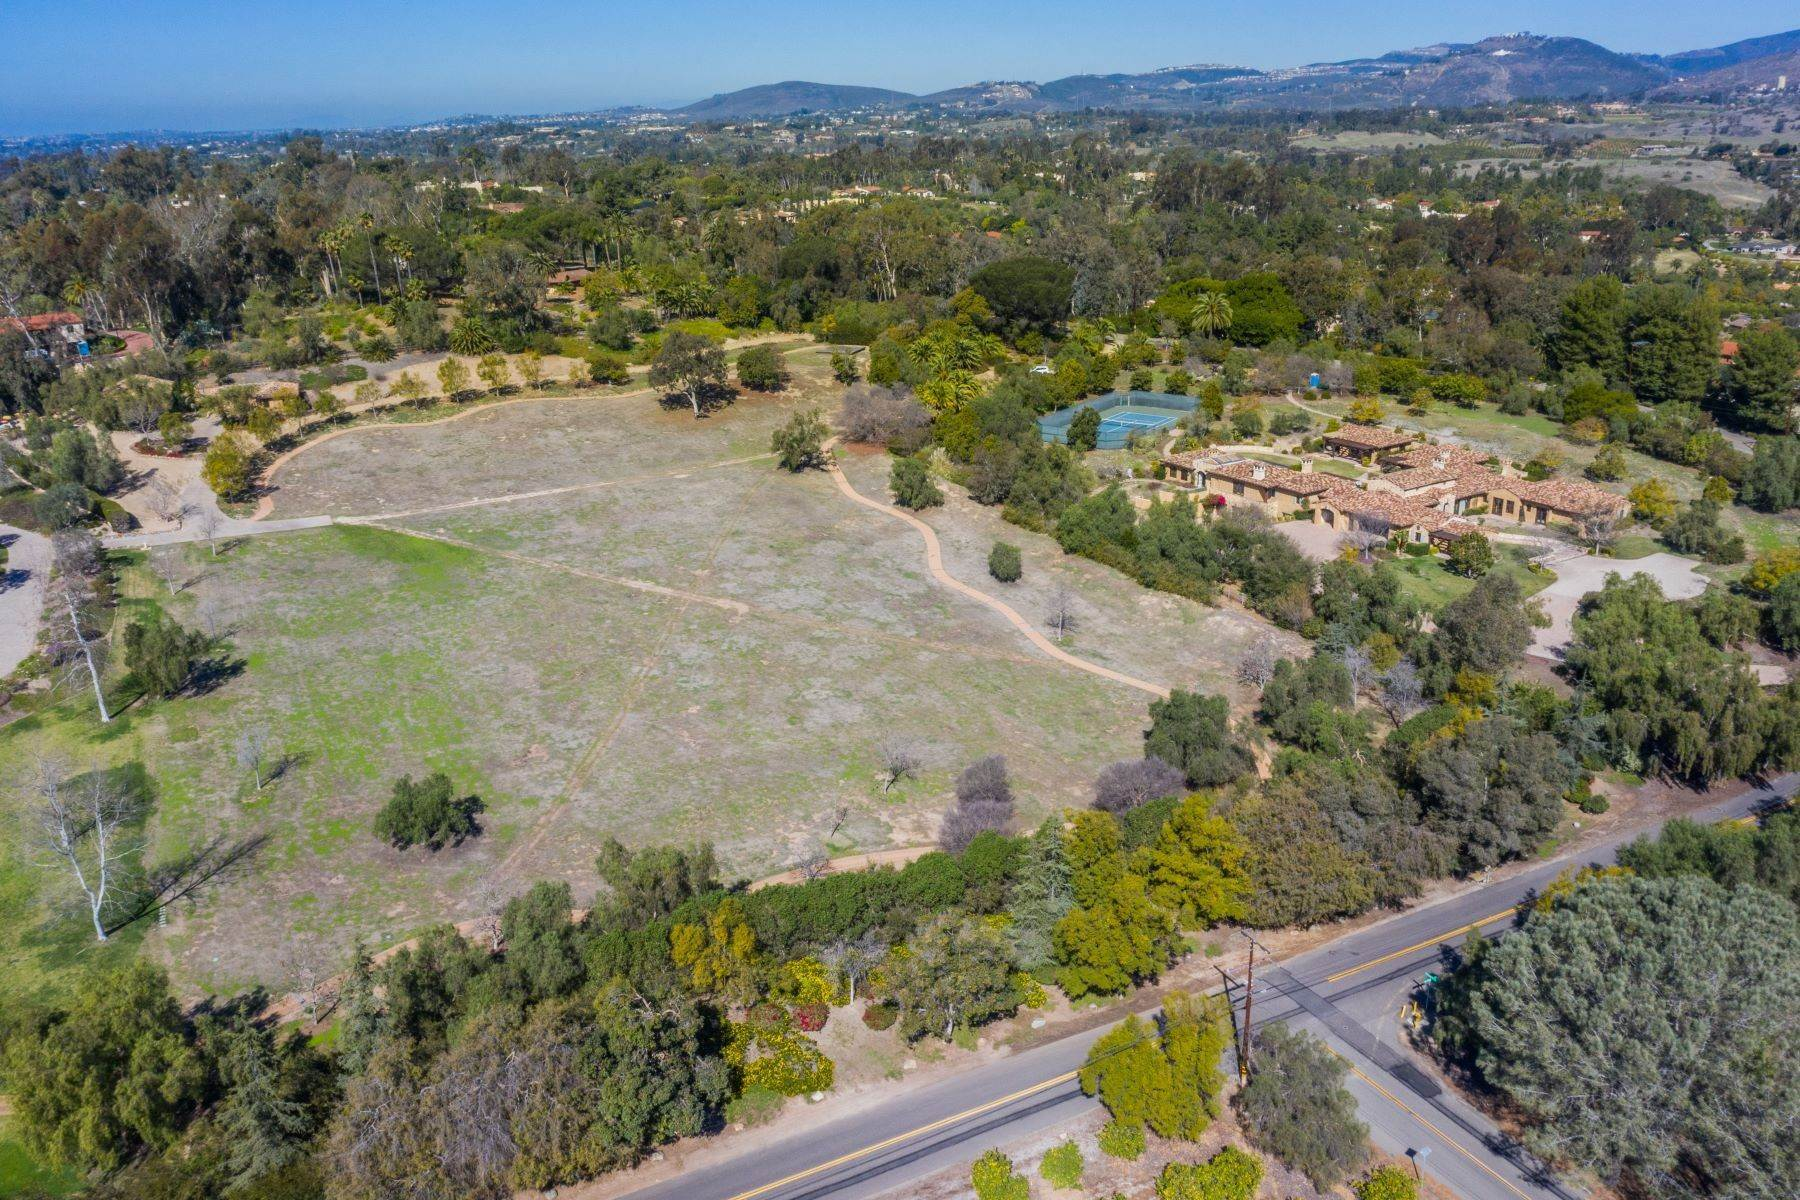 6. Land for Sale at 17048 El Mirador, Rancho Santa Fe, CA 92067 17048 El Mirador Rancho Santa Fe, California 92067 United States